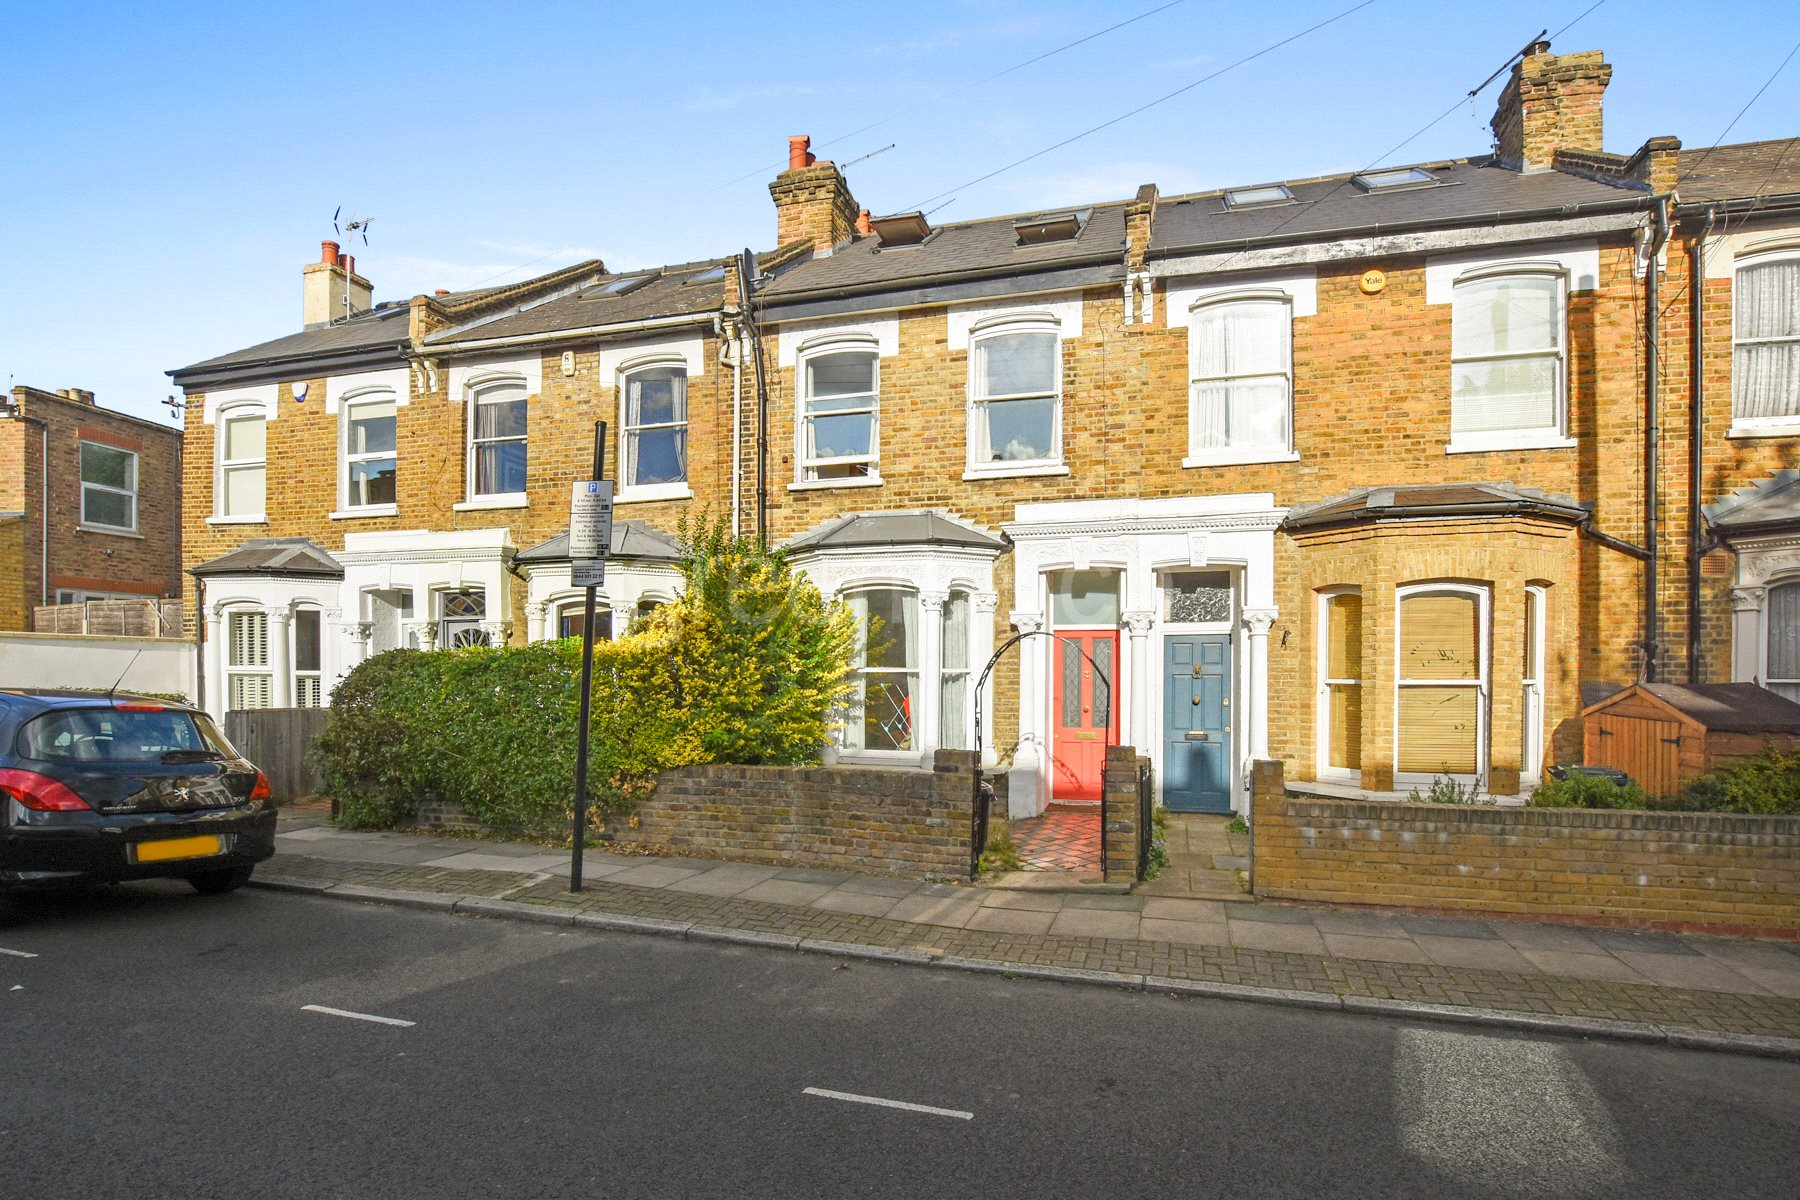 3 Bedrooms Terraced House for sale in Bracey Street, Stroud Green, N4